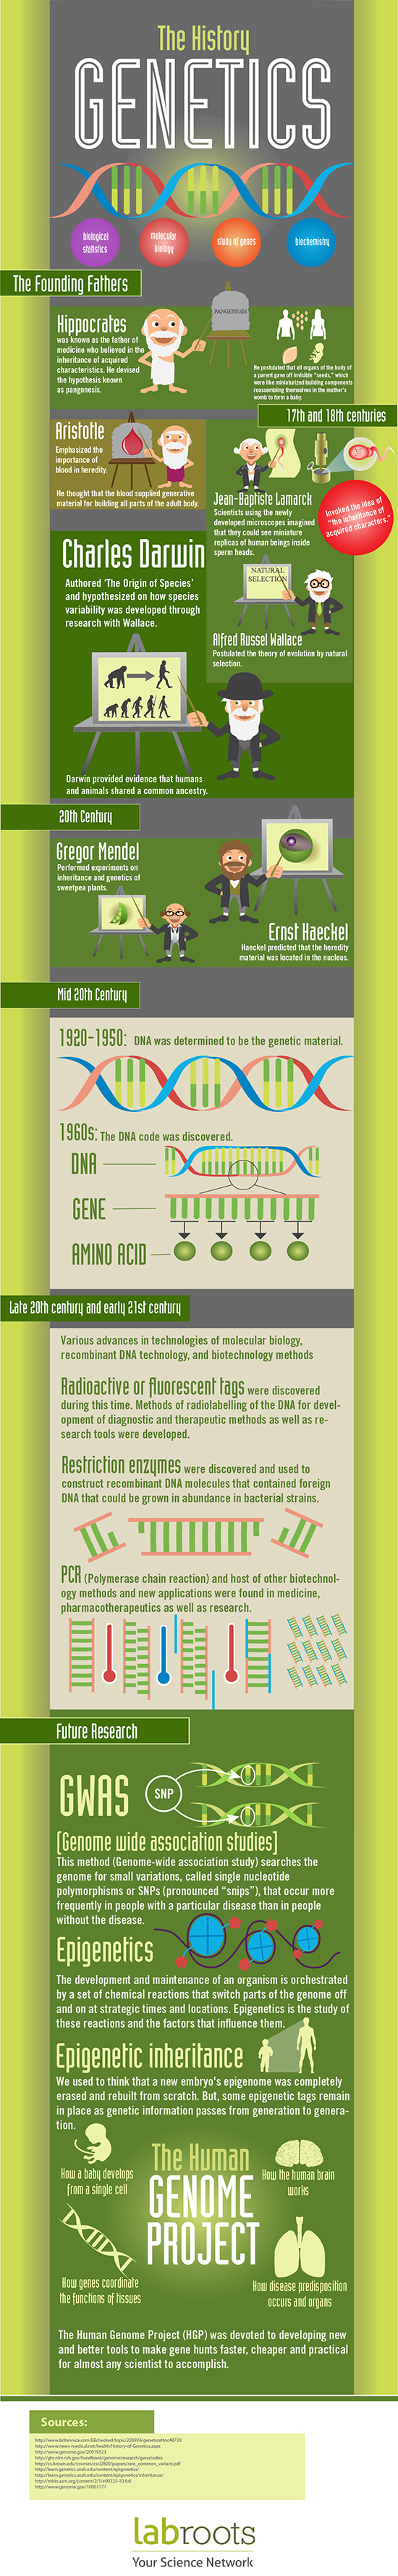 The History Of Genetics